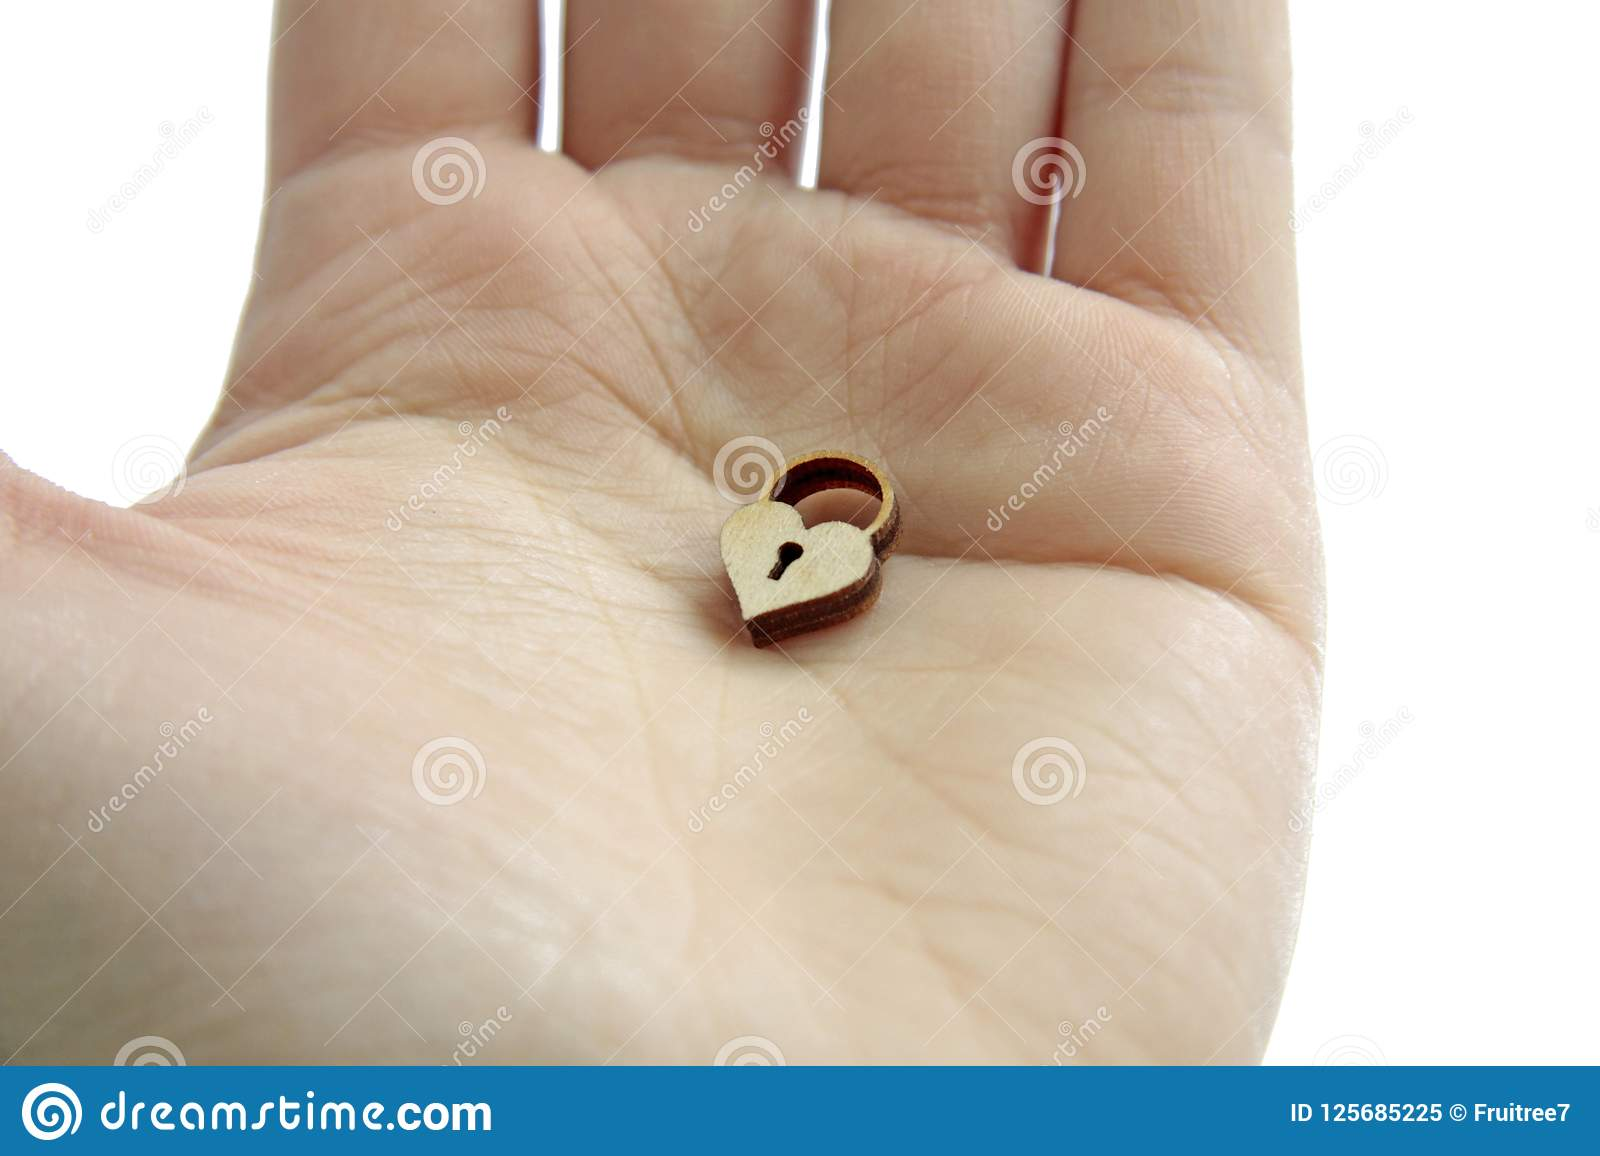 Wooden heart lock in hand on isolated background